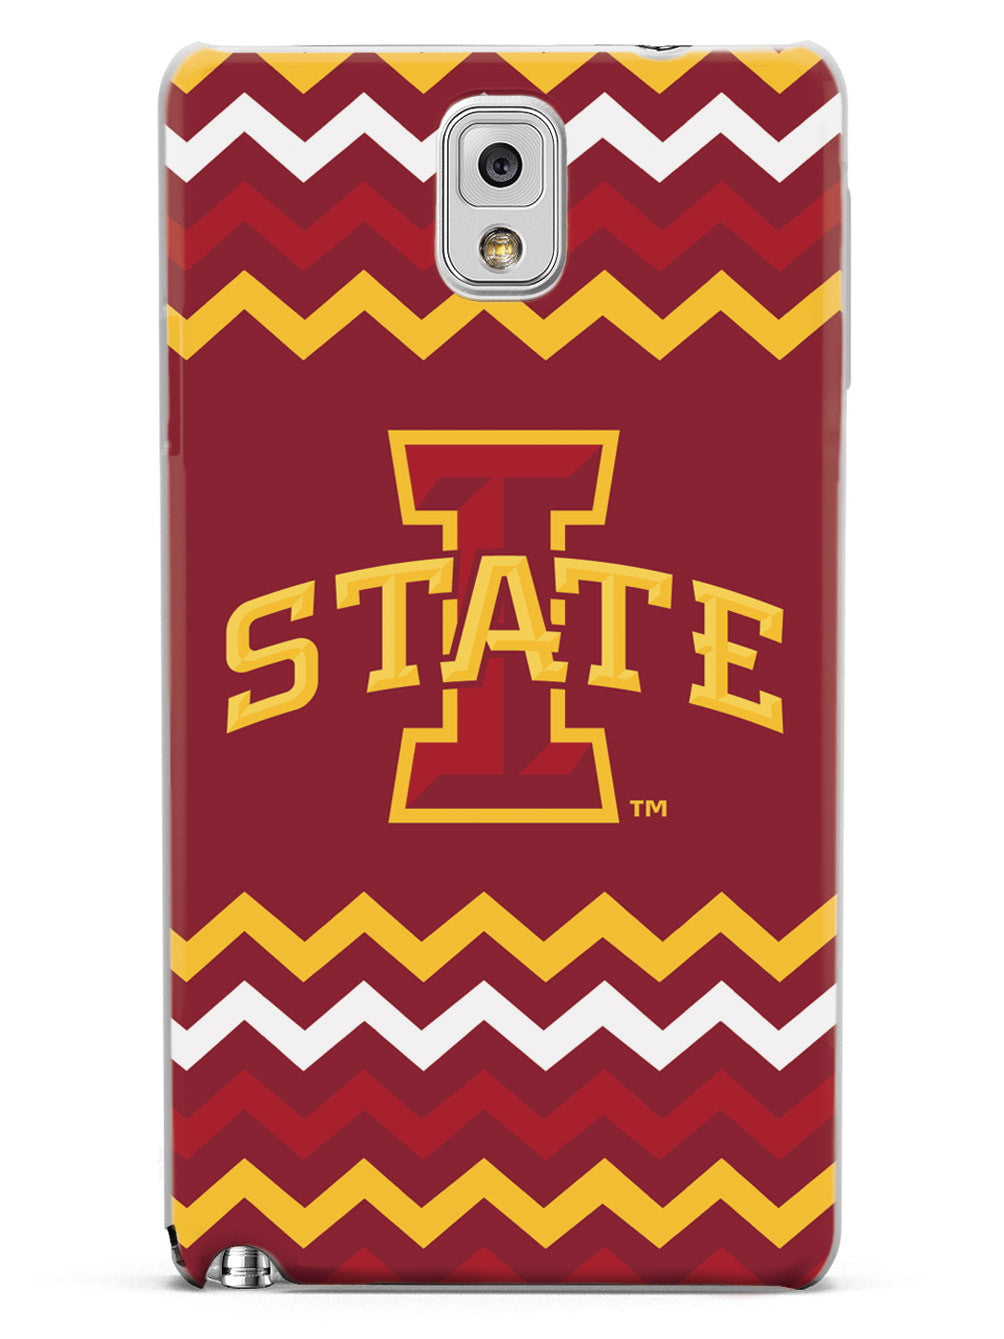 Iowa State University Cyclones - Chevron Case